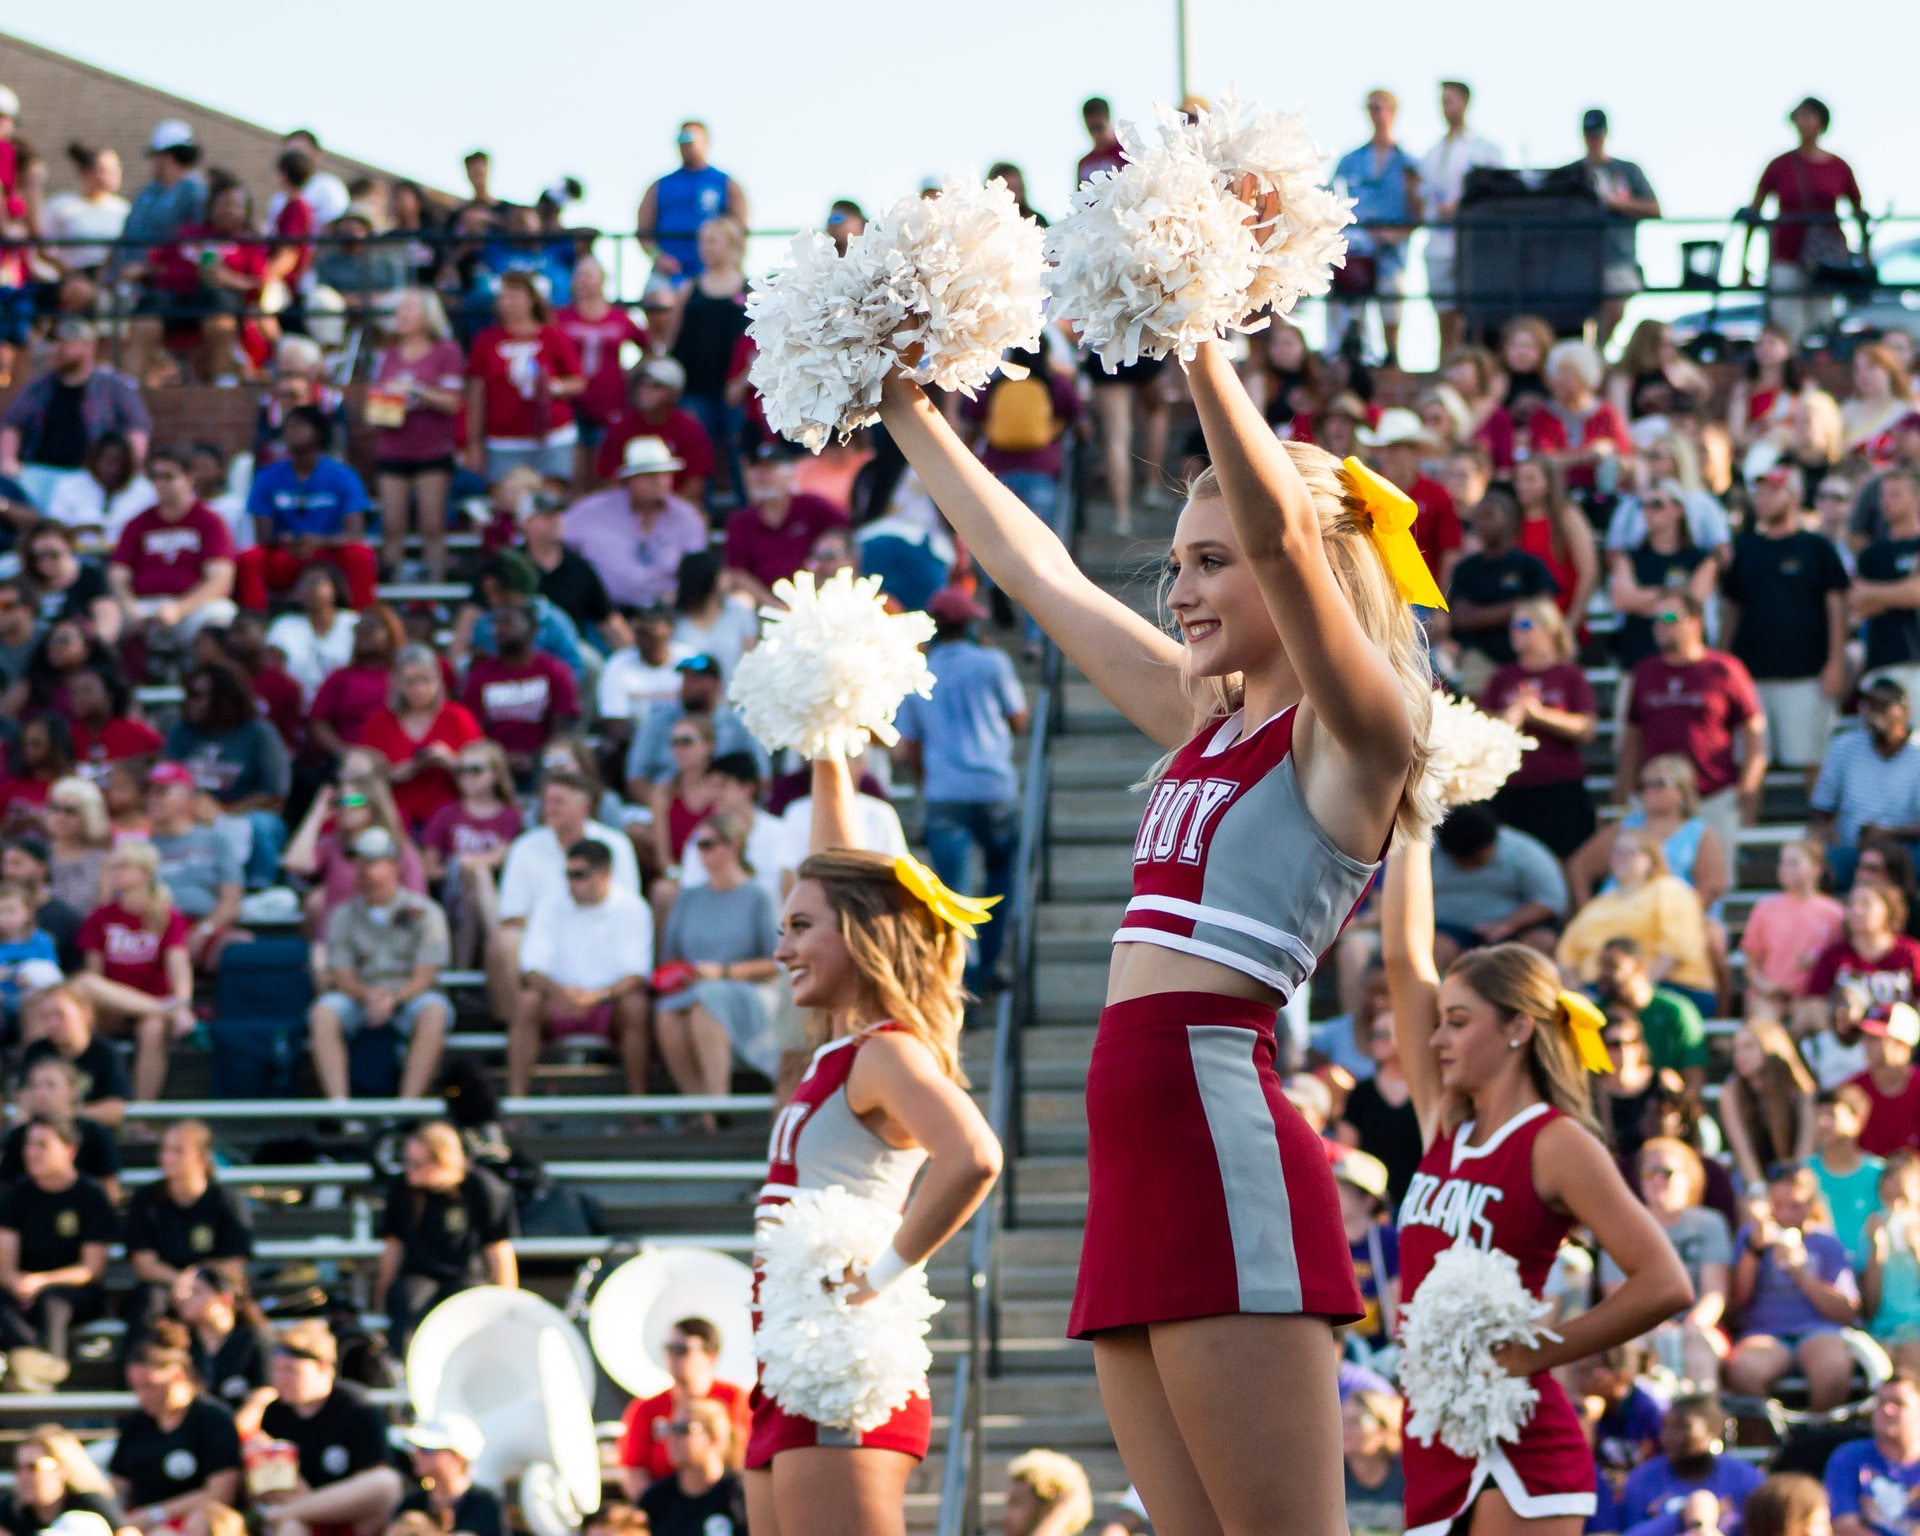 cheerleader wearing a red and gray uniform holding up pom poms with a crowd behind her